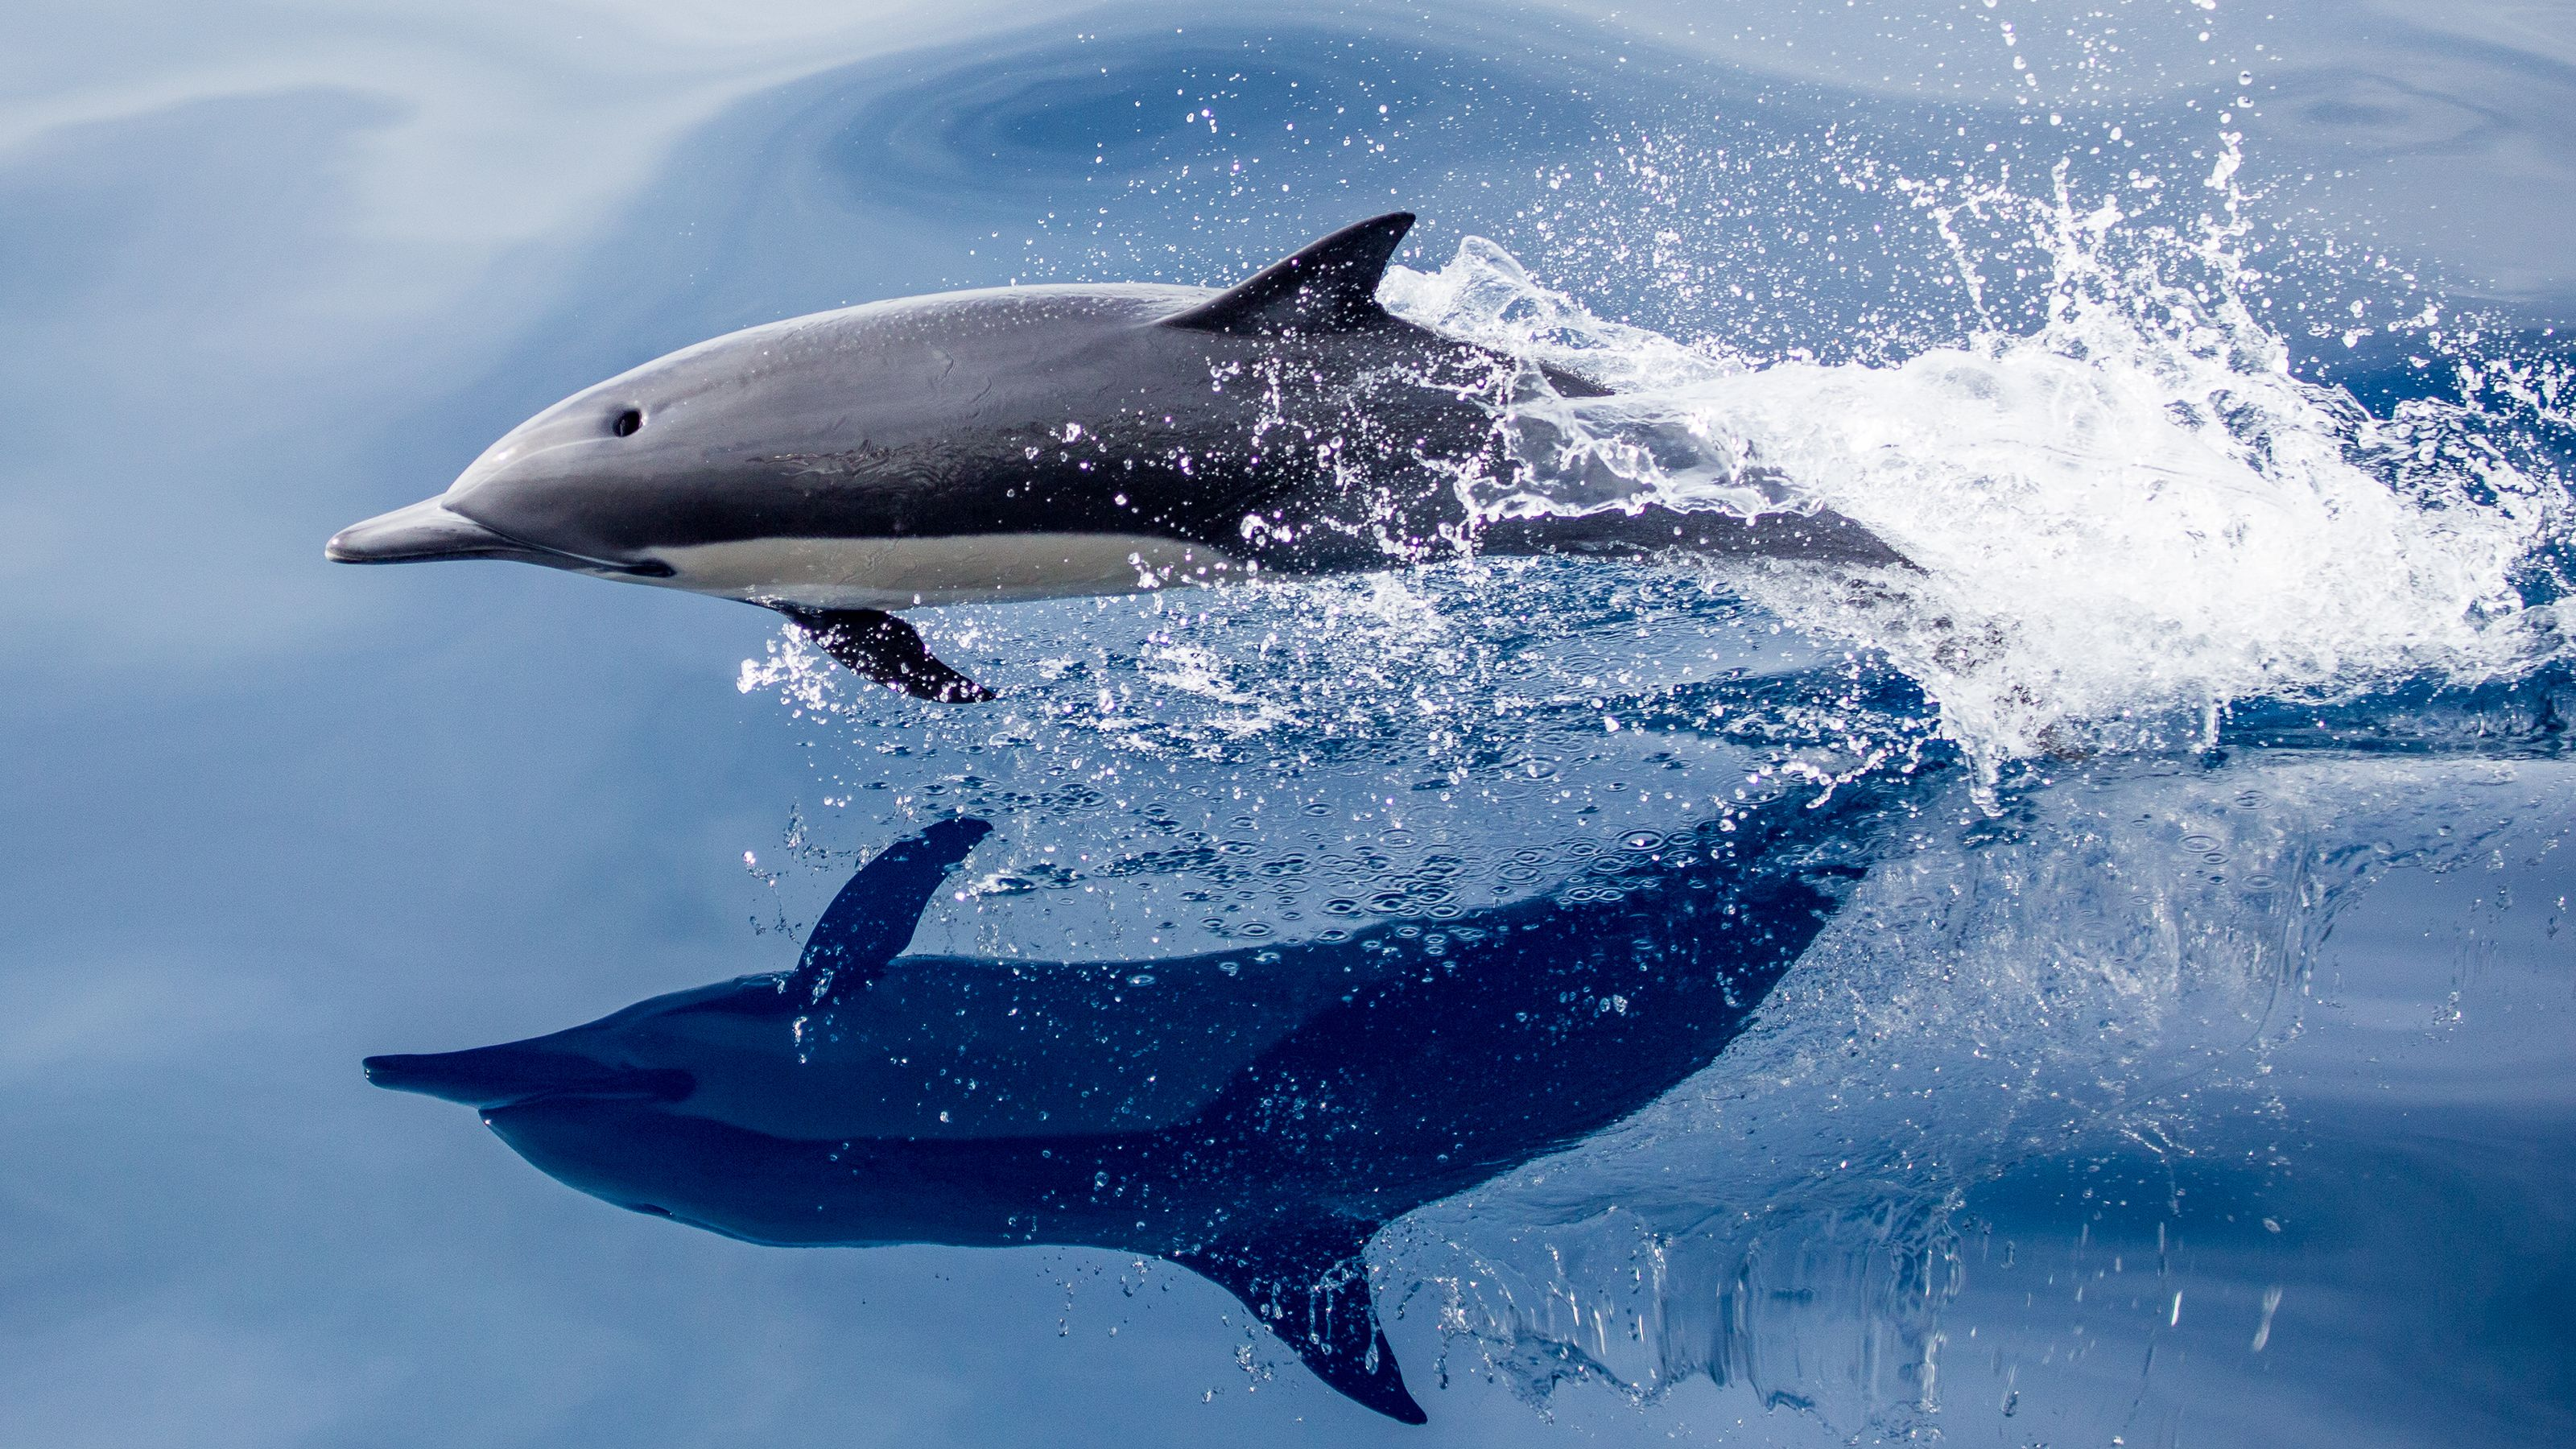 A dolphin leaping from the ocean.